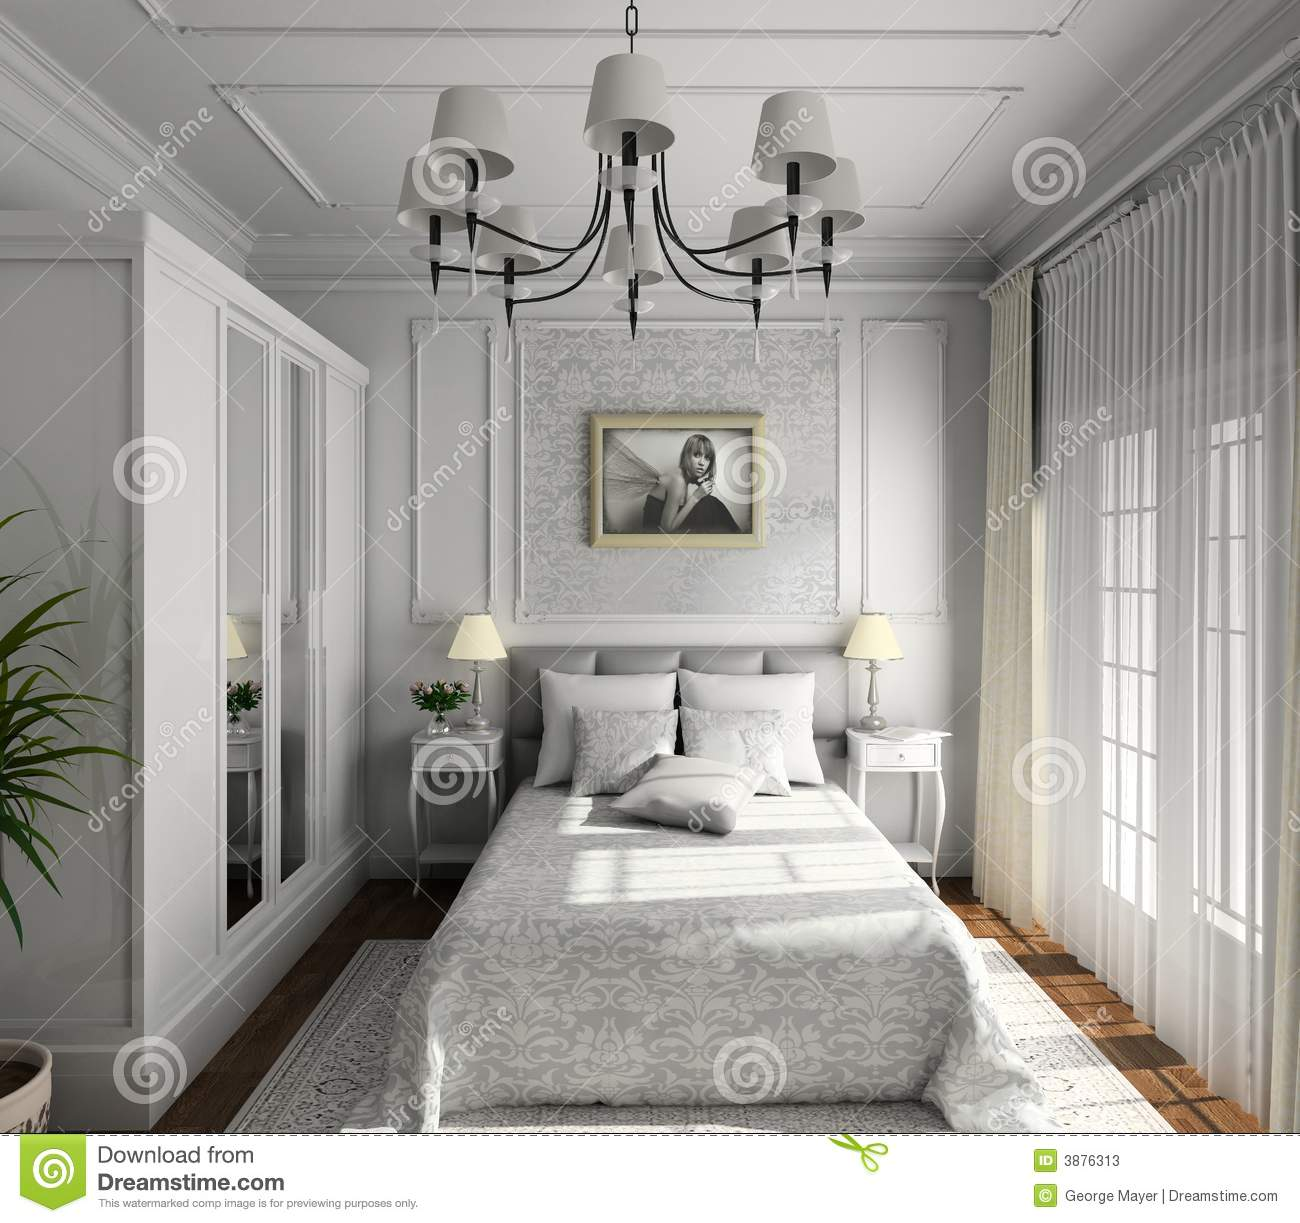 Classic design of interior stock illustration image of for Classic design interior